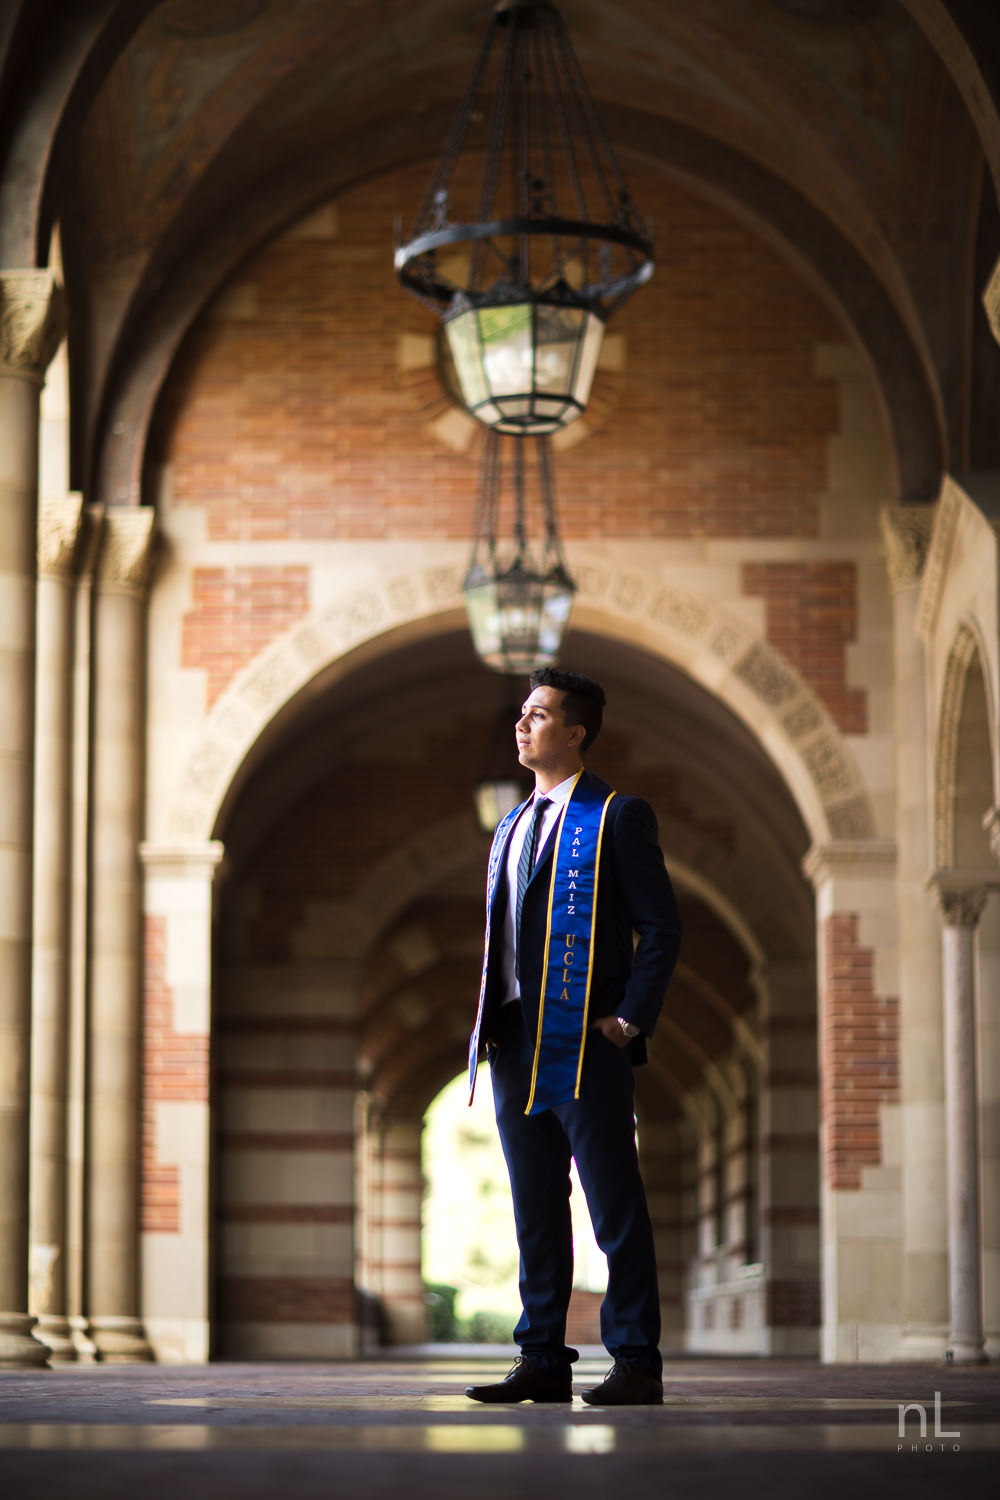 UCLA Class of 2019 graduate wearing suit and tie and graduation sash smiling and standing in Royce Hall arches.